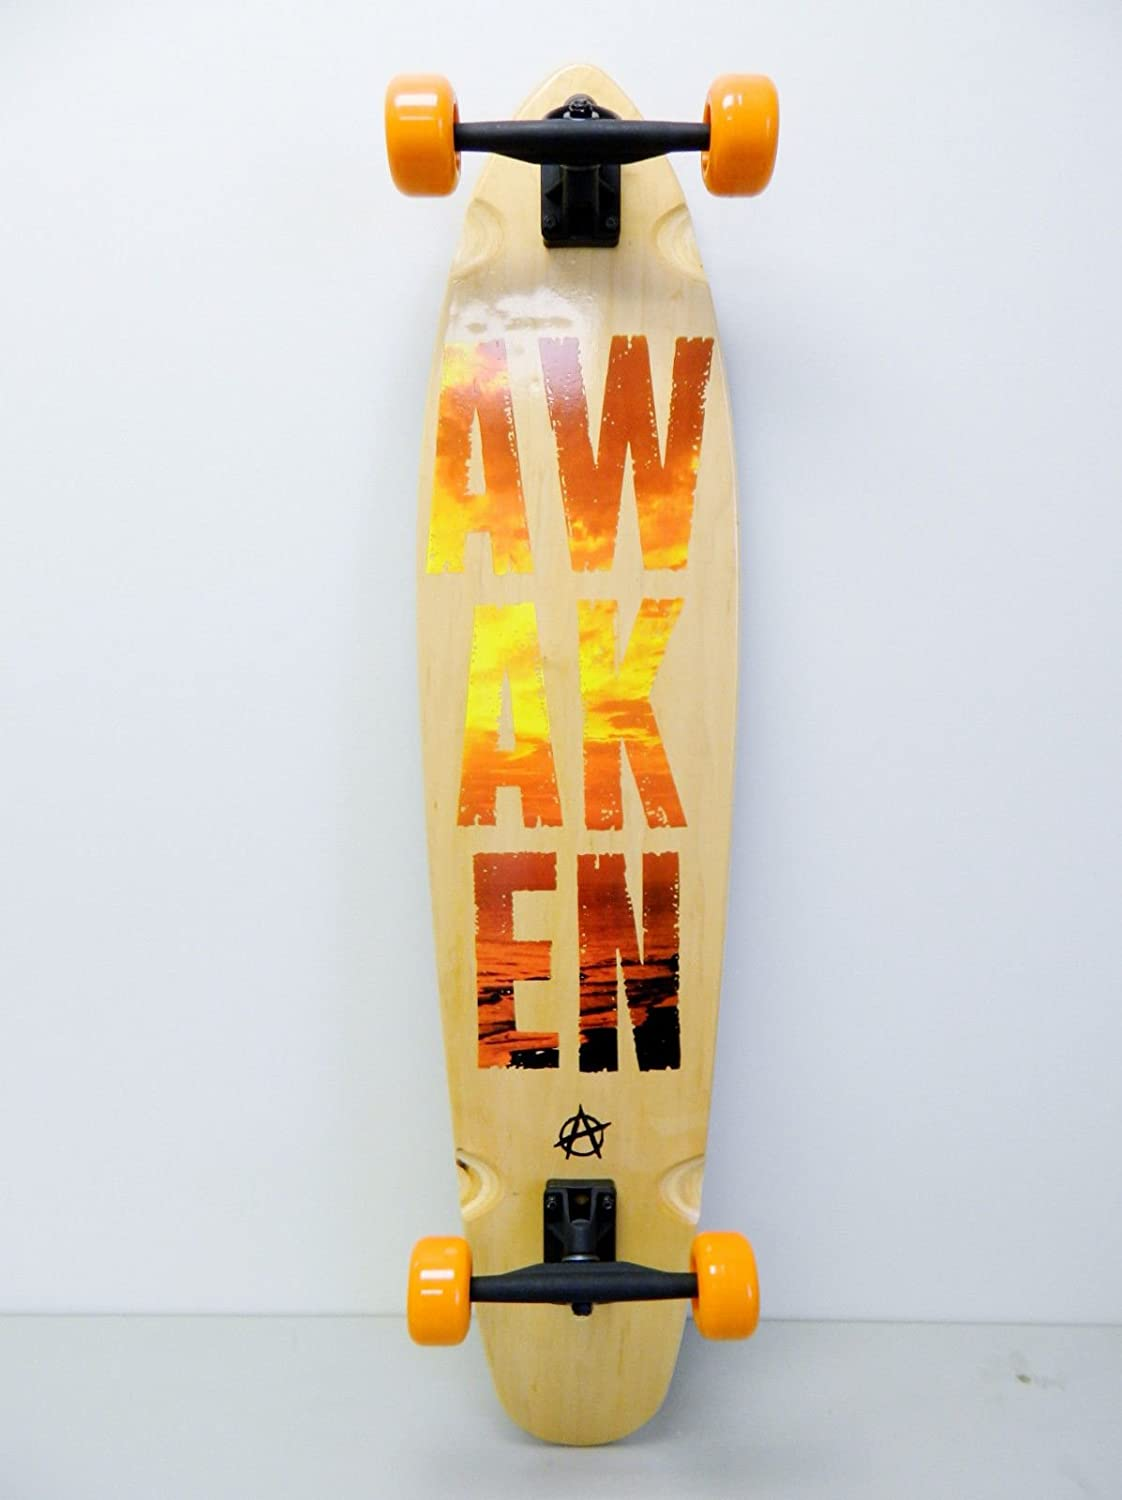 新作 Awaken by Sunset Kicktail 9.5 42 x Awaken 42 Cruiser Longboard Complete by Awaken B00PBALEYK, スノマタチョウ:8b35283e --- a0267596.xsph.ru